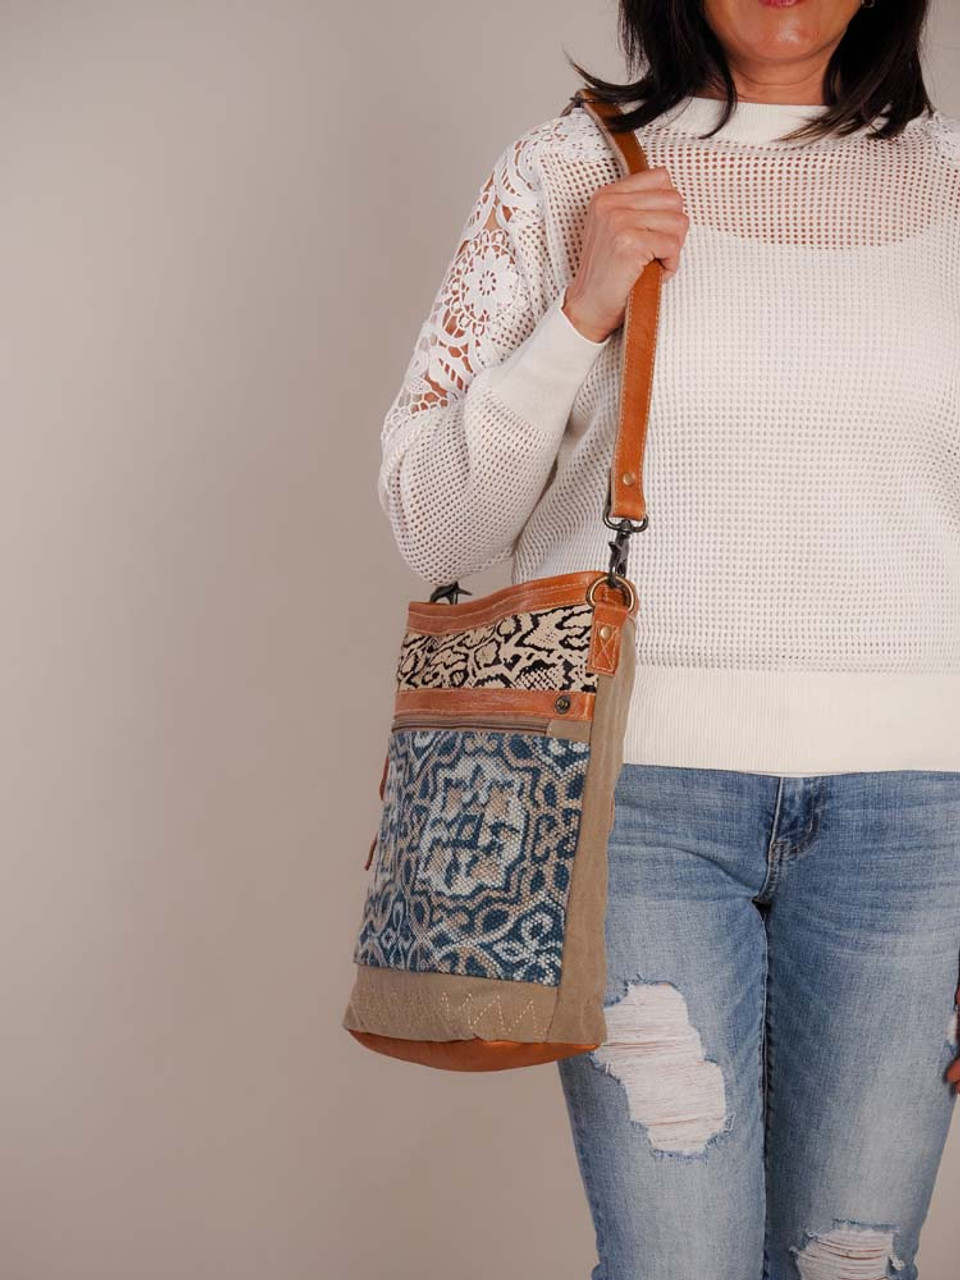 A unique blend of snake-print cowhide, azure pattern, and zig-zag stitching at the bottom. Leather details and bottom; canvas back; zipper pockets on front and back; adjustable/removable shoulder strap; zipper close at top; interior is fully lined and has one zipper pocket and two slip pockets.